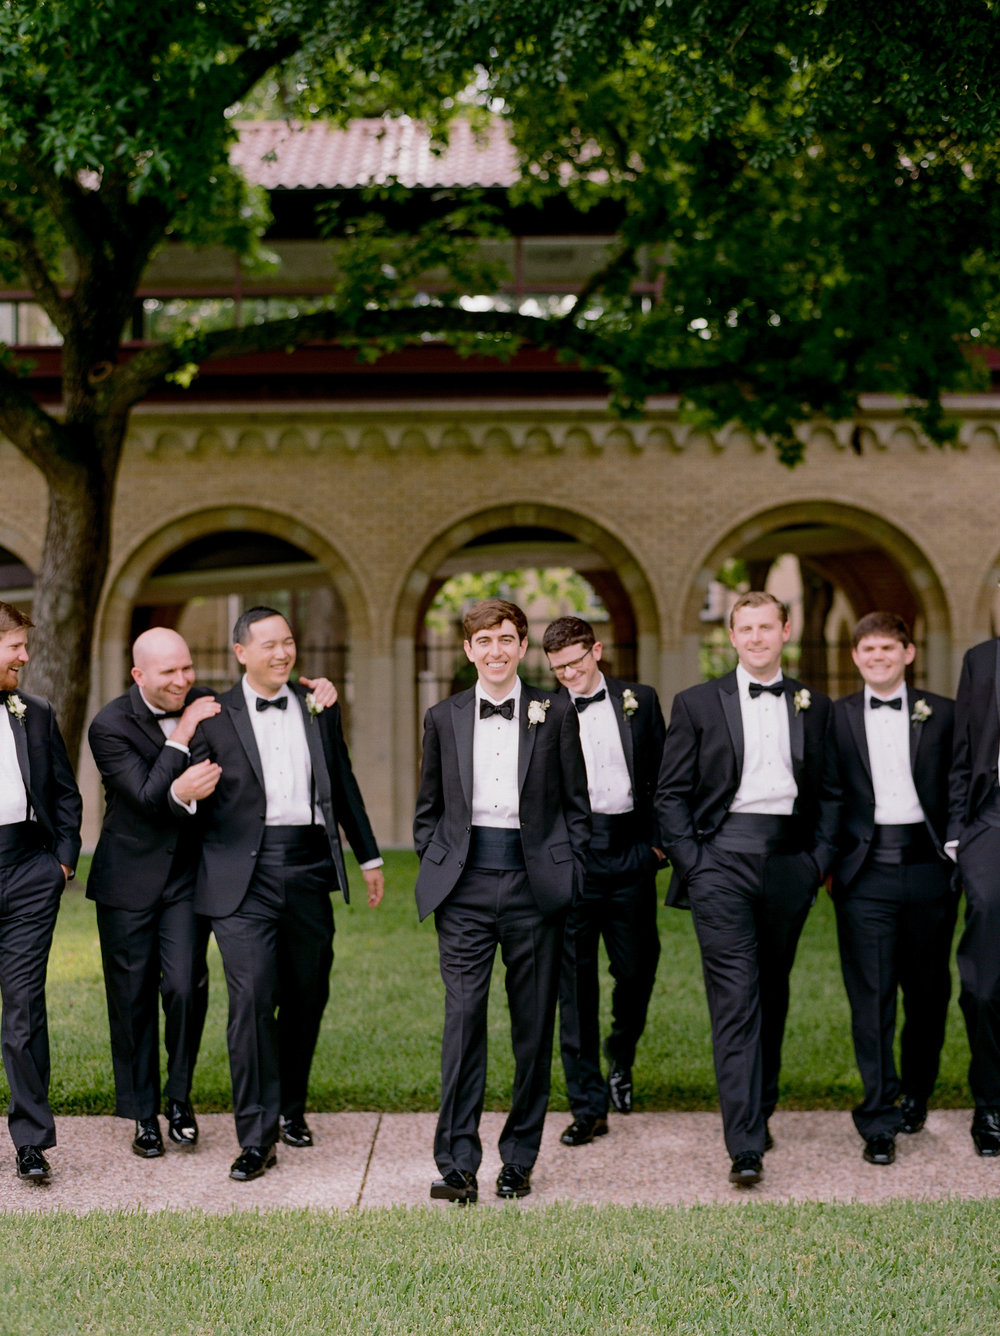 Fine-Art-Film-Houston-Wedding-Photographer-Best-Top-Luxury-Texas-Austin-Dallas-Destination-Dana-Fernandez-Photography-River-Oaks-Country-Club-South-Main-Baptist-Ceremony-Reception-Wedding-26.jpg